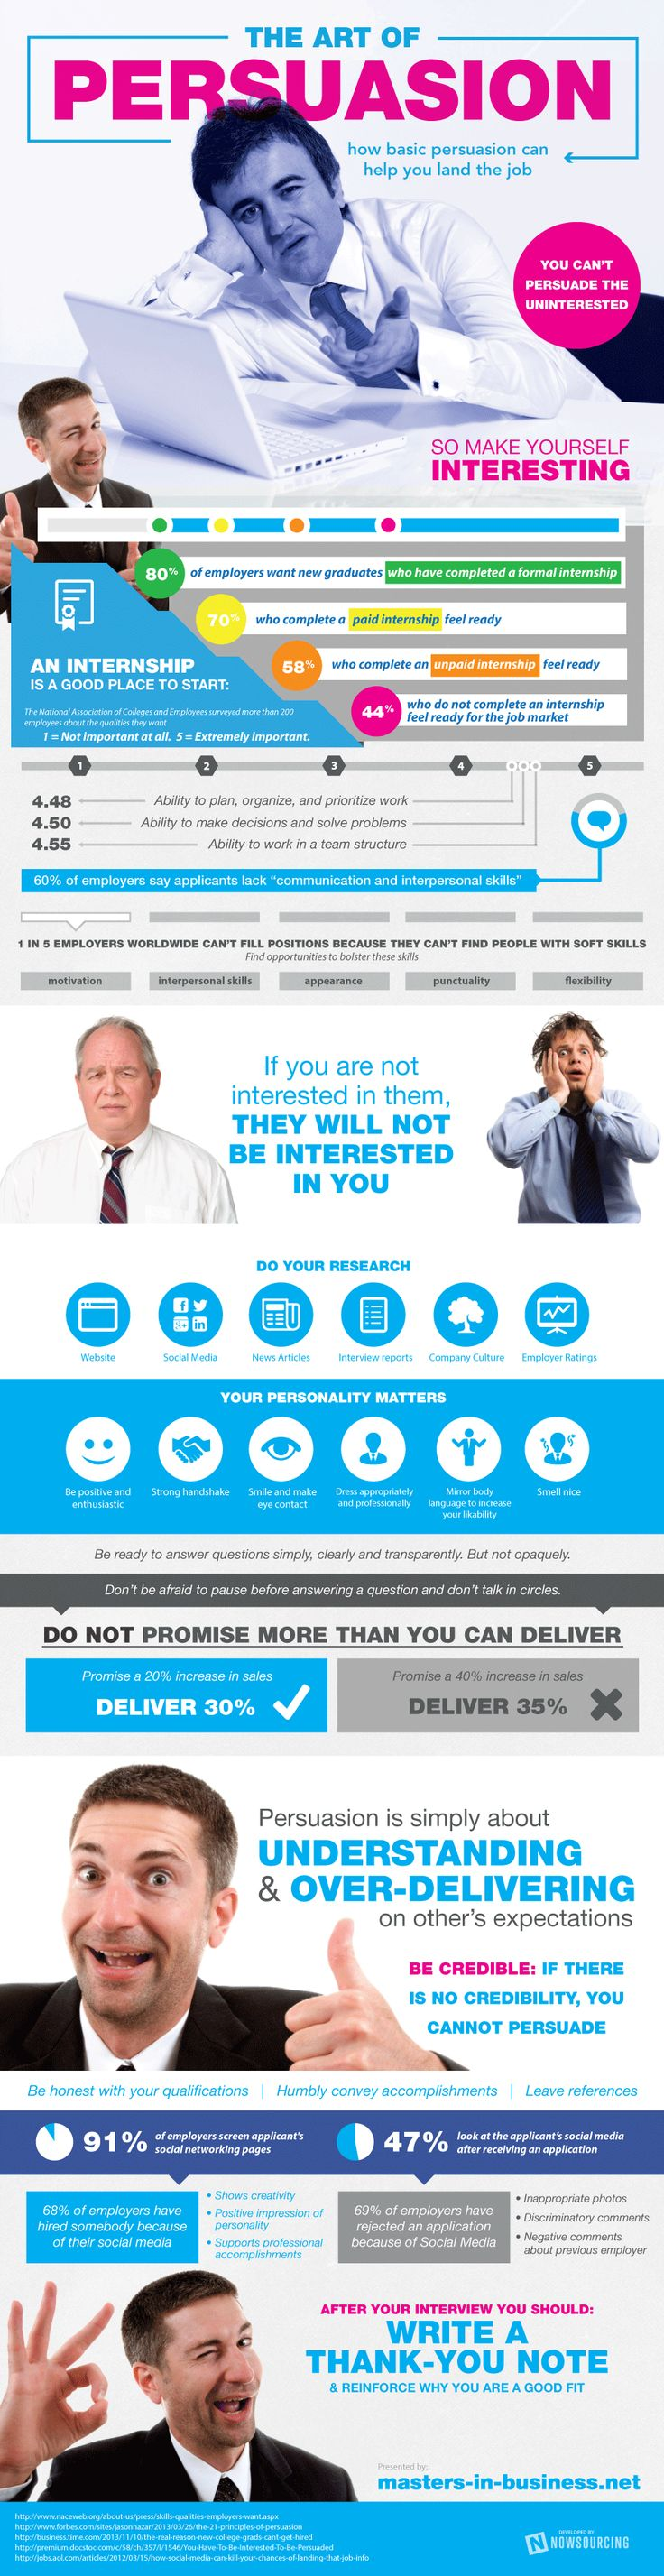 How Basic Persuasion Can Help You Land the Job #Infographic — Lightscap3s.com